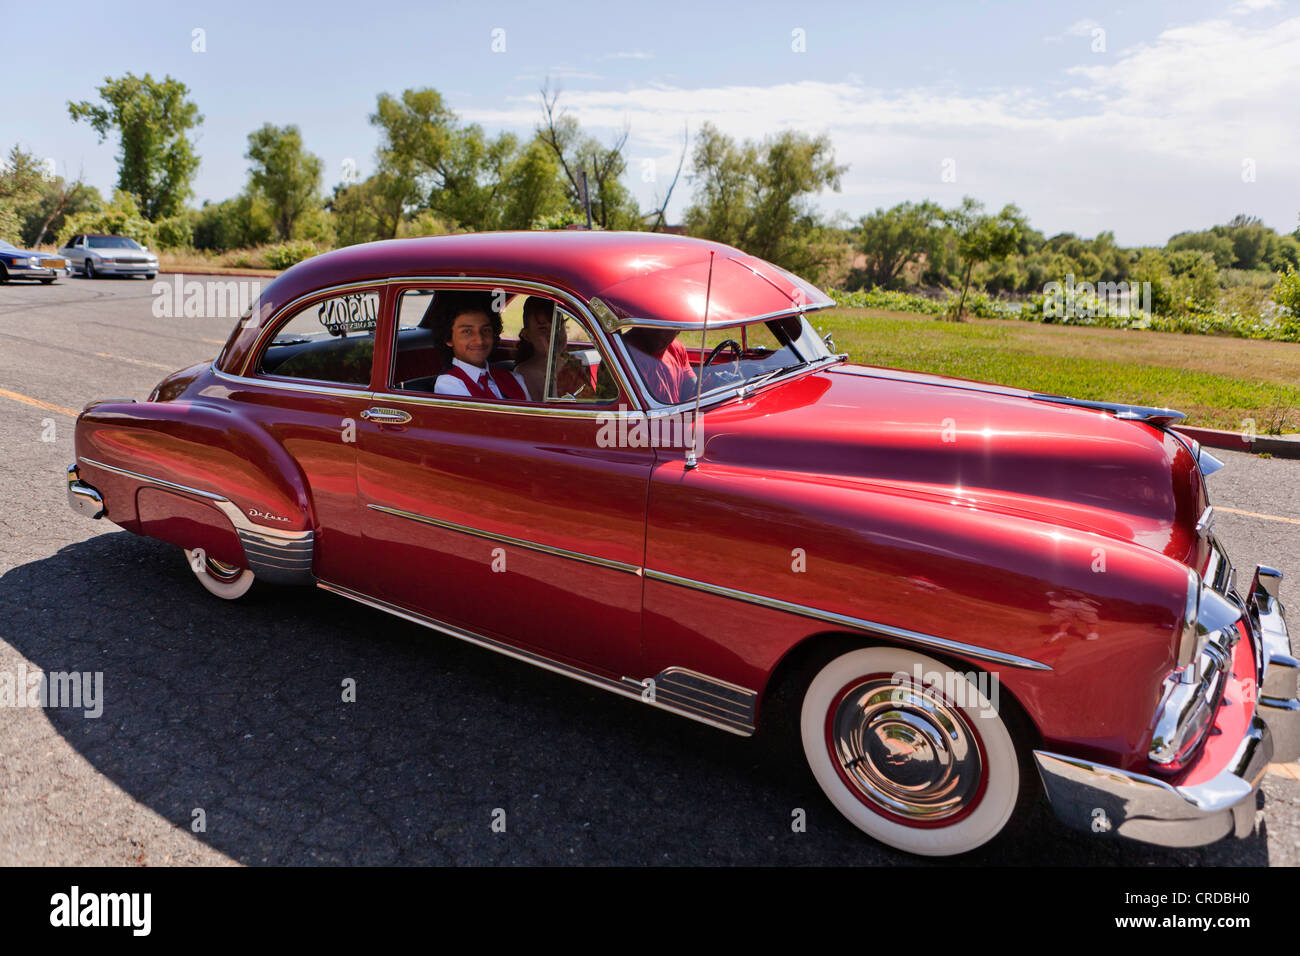 1952 chevy deluxe lowrider   california usa stock photo royalty free